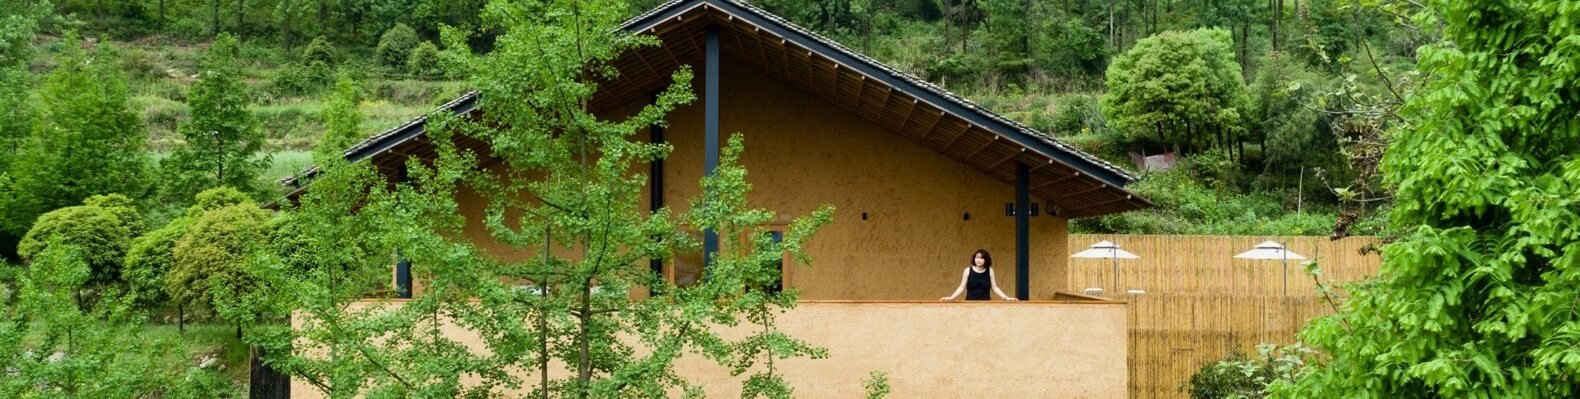 rural eco friendly village built with raw materials surrounded by greenery